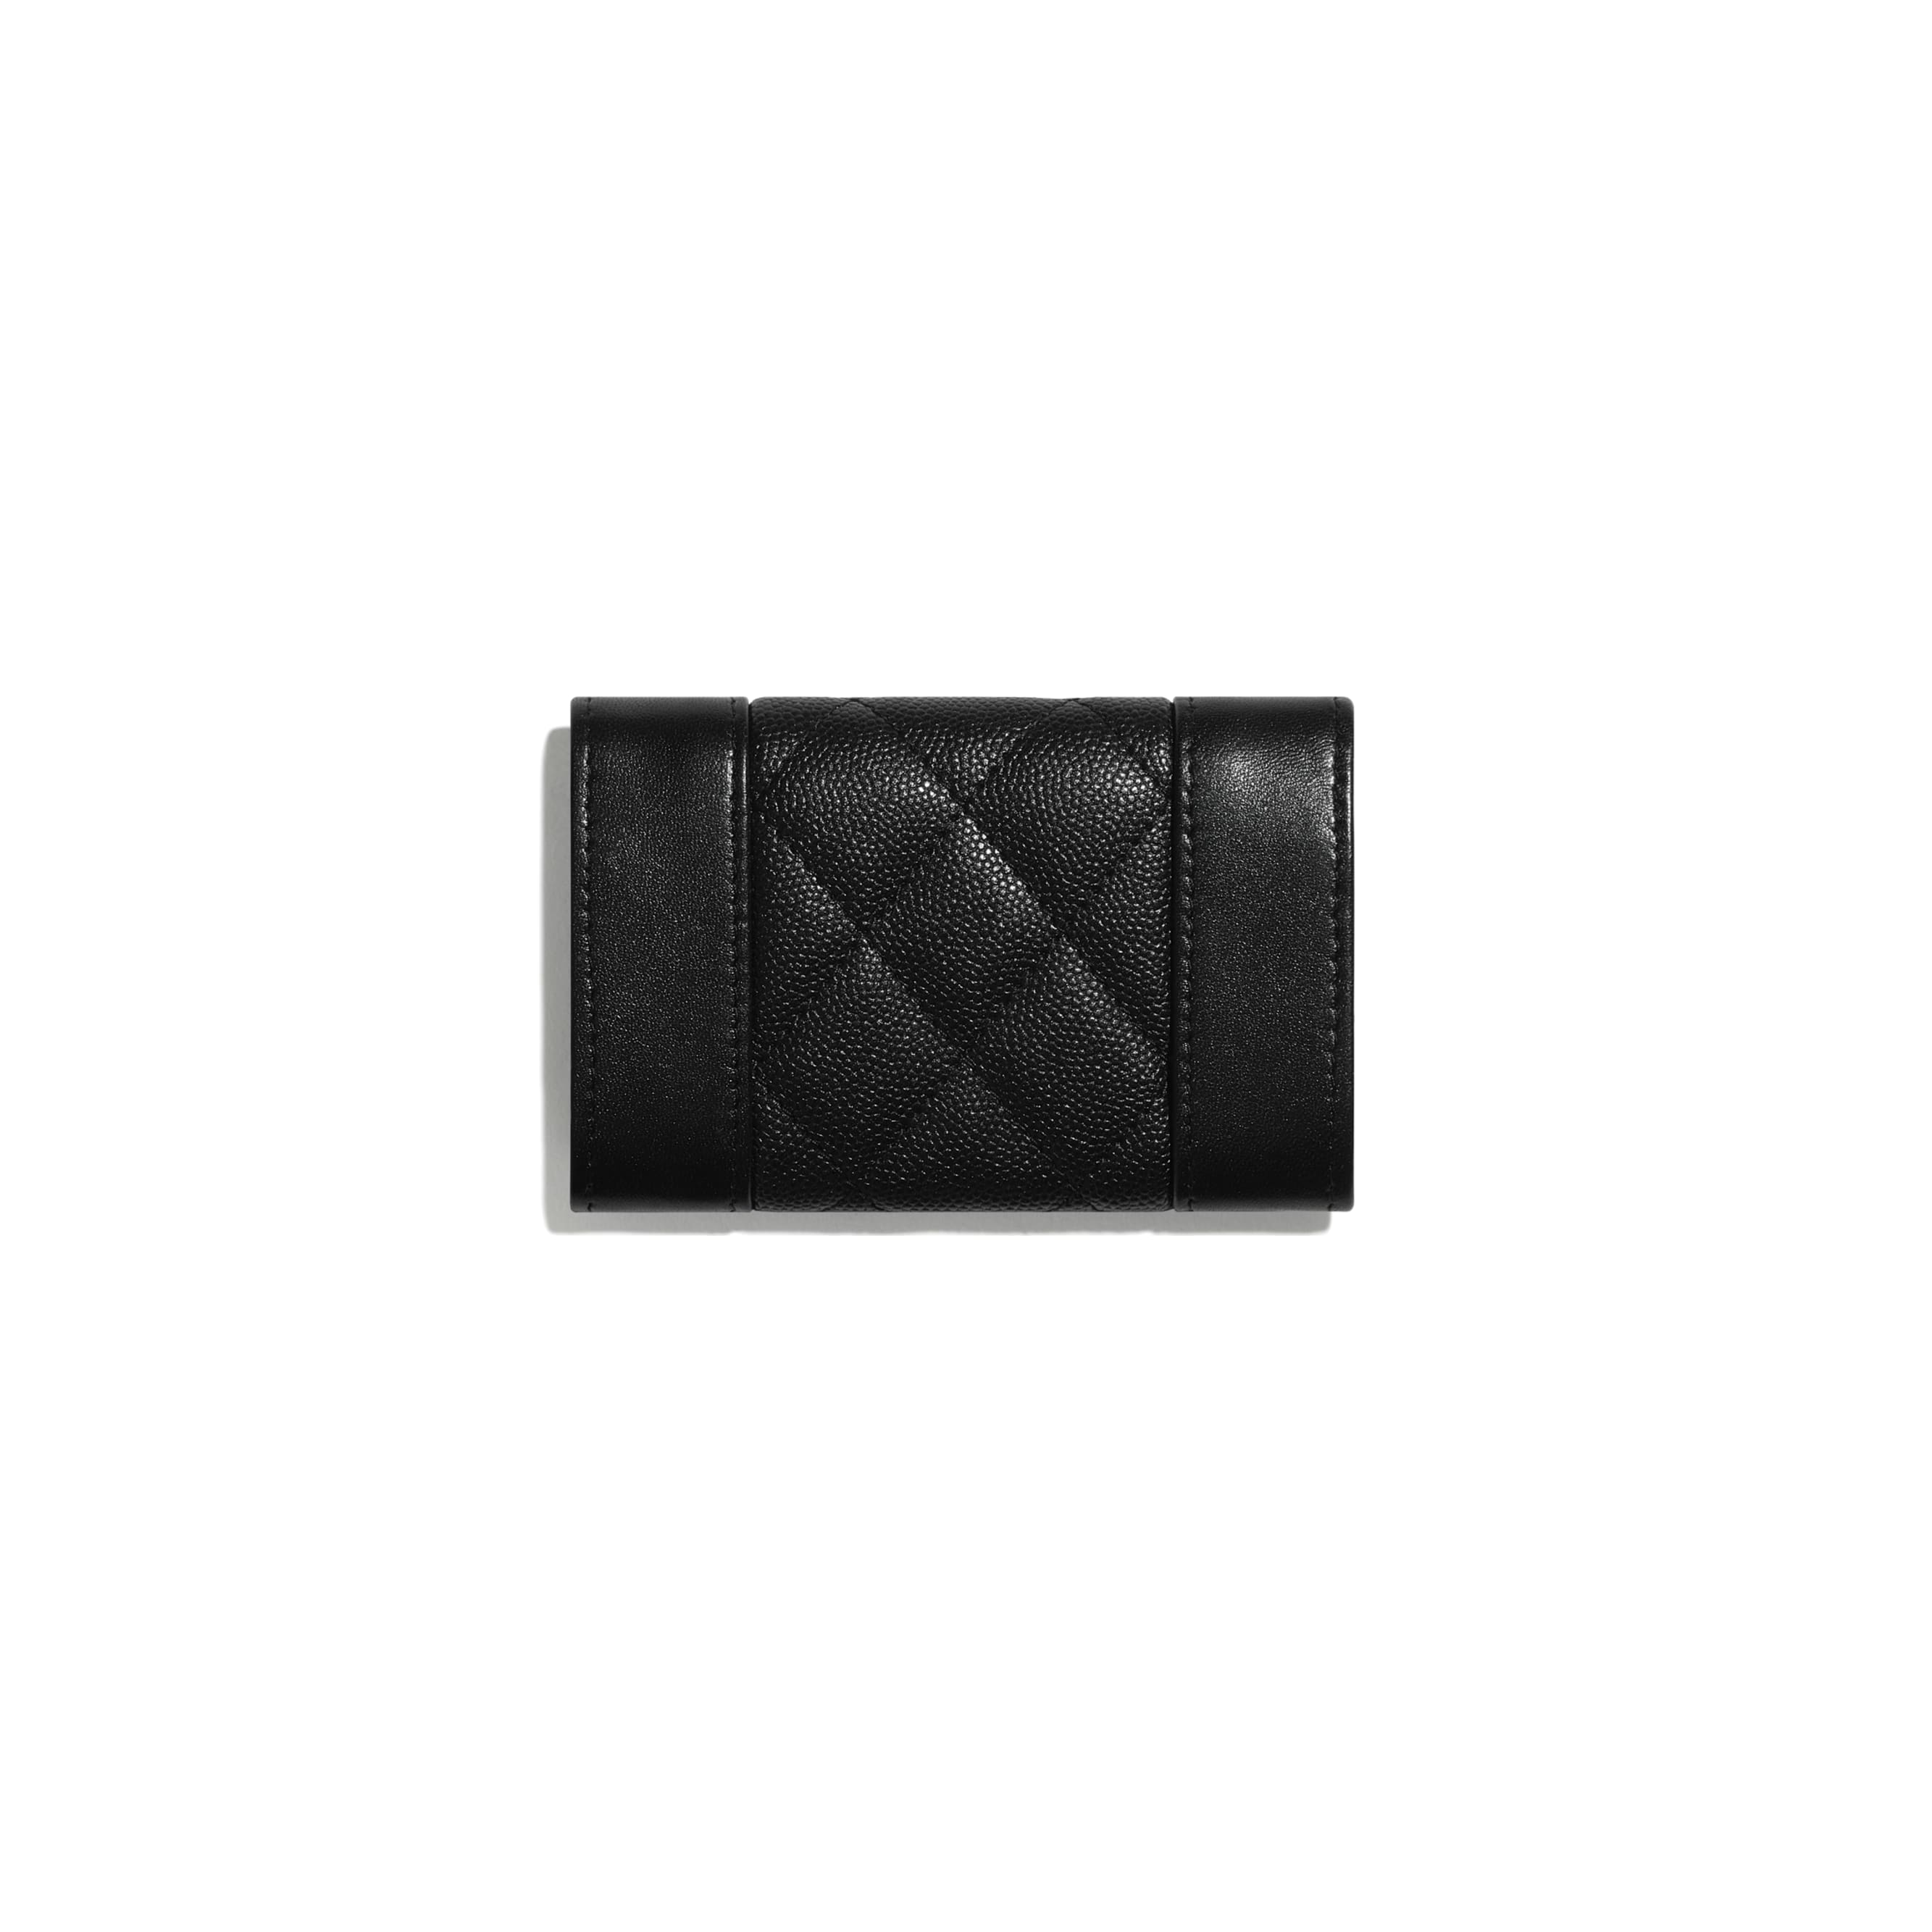 Flap Card Holder - Black - Grained Calfskin, Calfskin & Silver-Tone Metal - CHANEL - Alternative view - see standard sized version